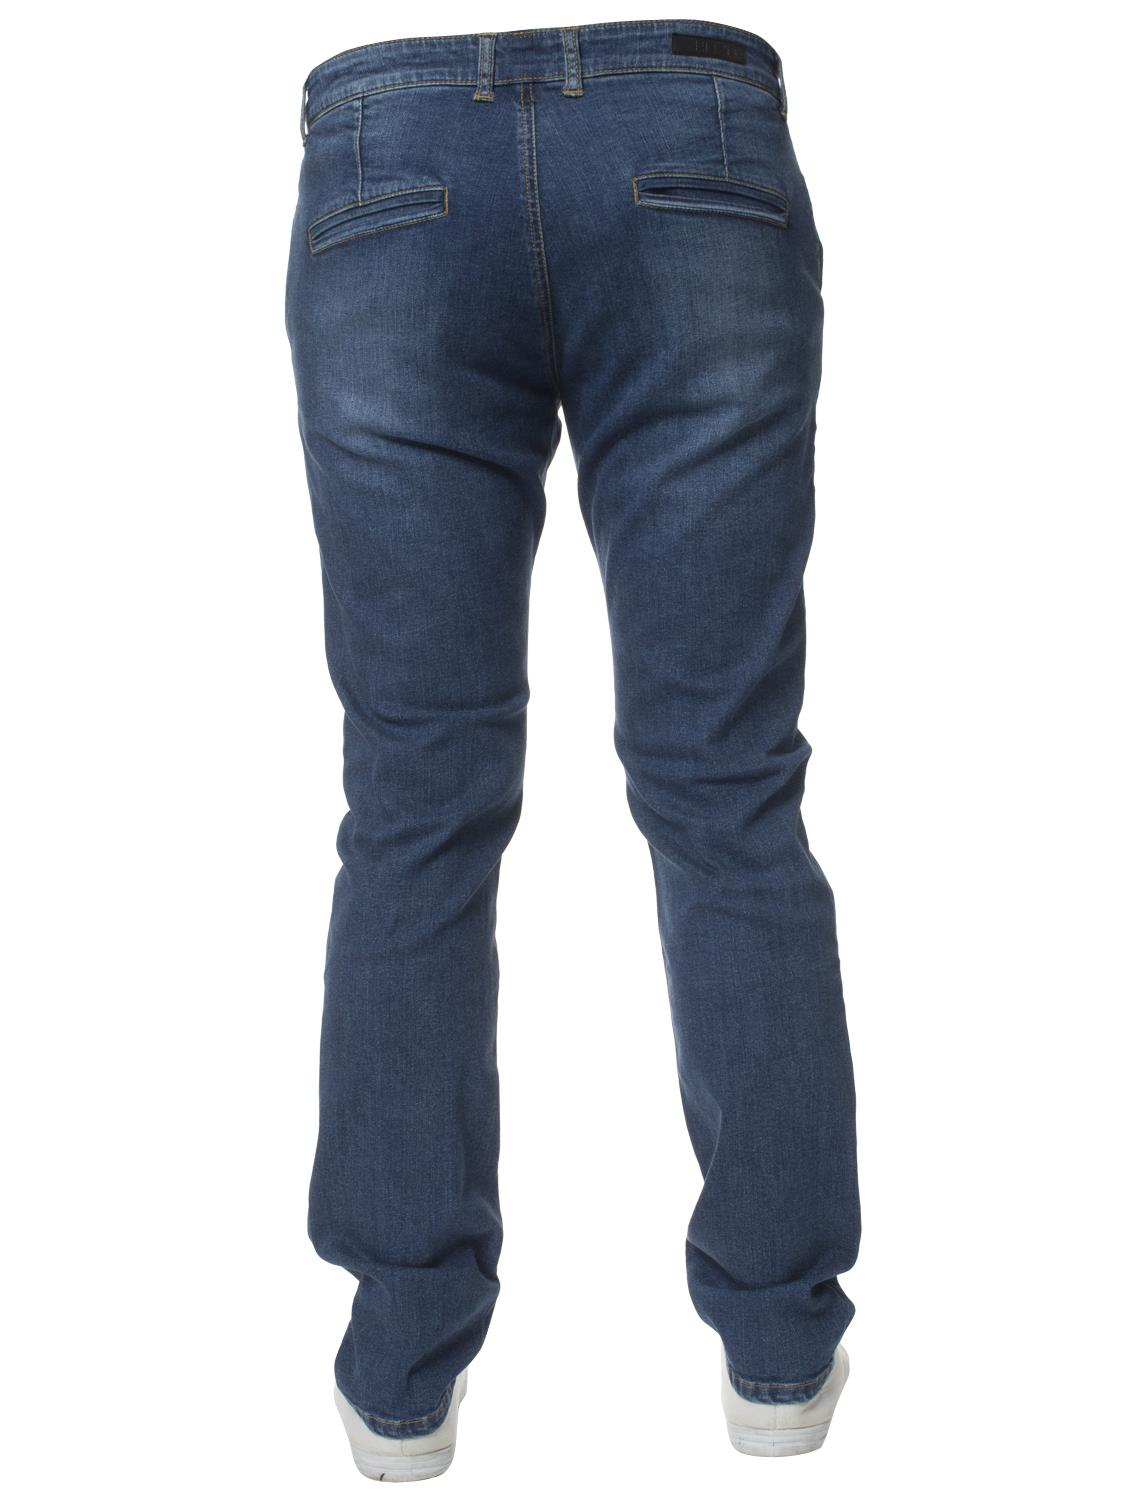 Enzo-Mens-Jeans-Big-Tall-Leg-King-Size-Denim-Pants-Chino-Trousers-Waist-44-034-60-034 miniature 31